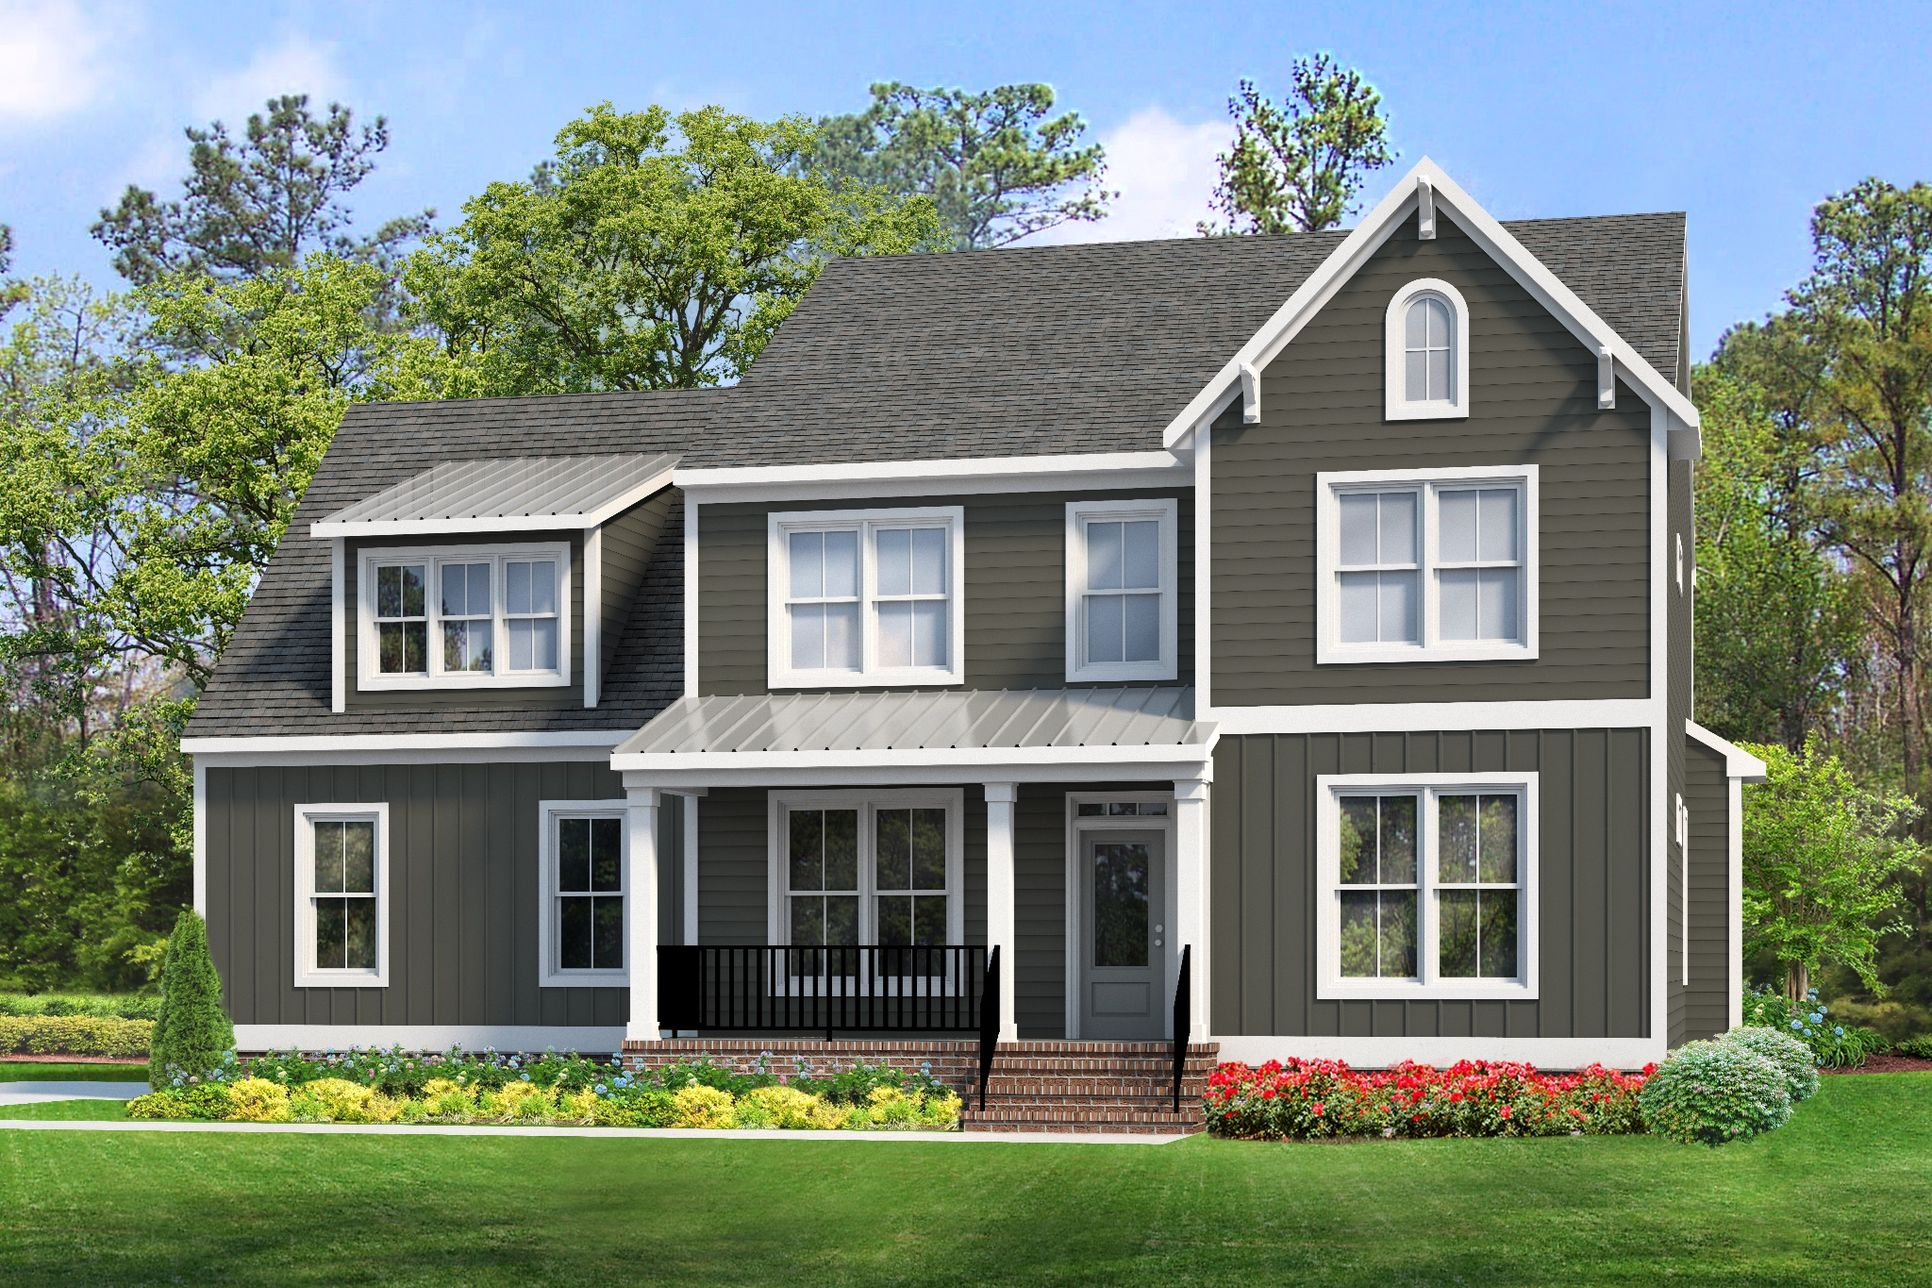 Jefferson Model Home - Coming This Summer on Homesite 22